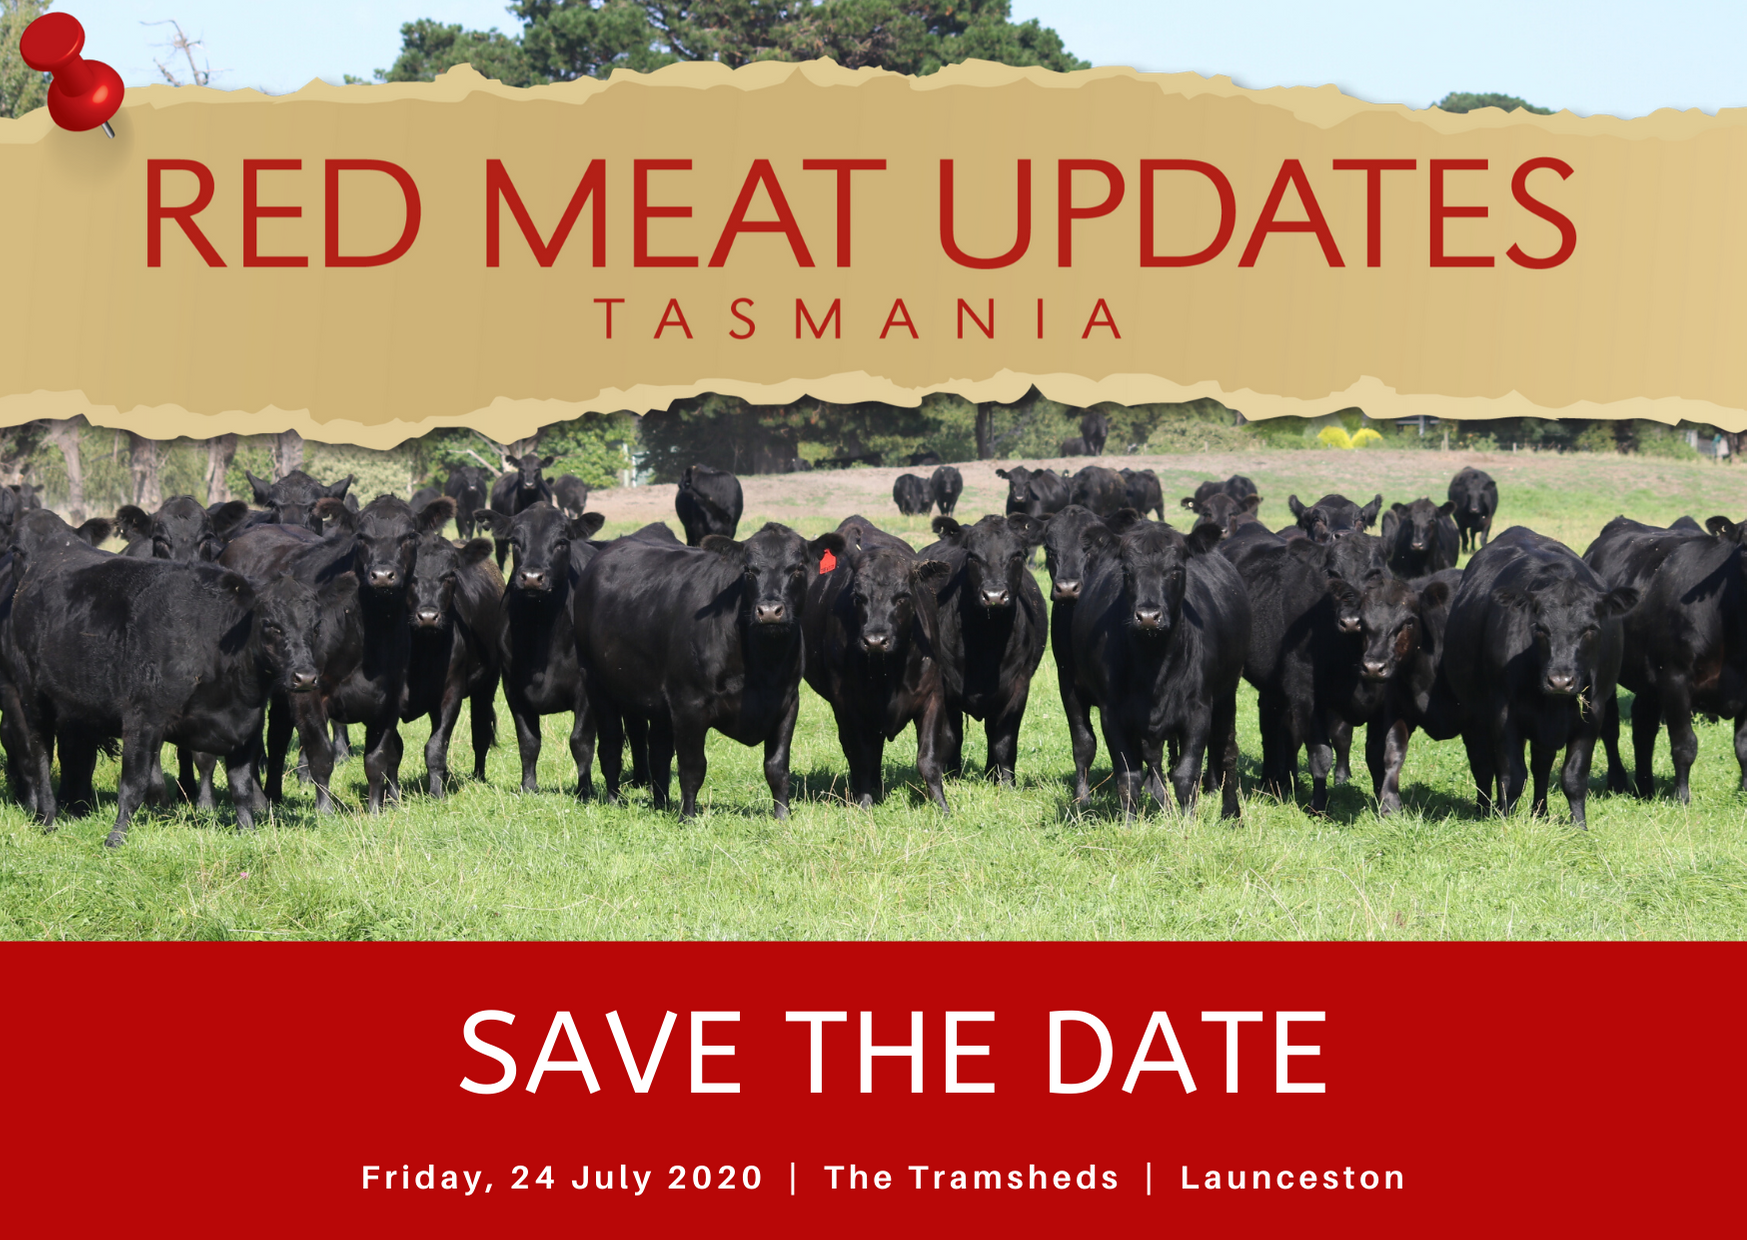 Red Meat Updates 2020 - Save the date